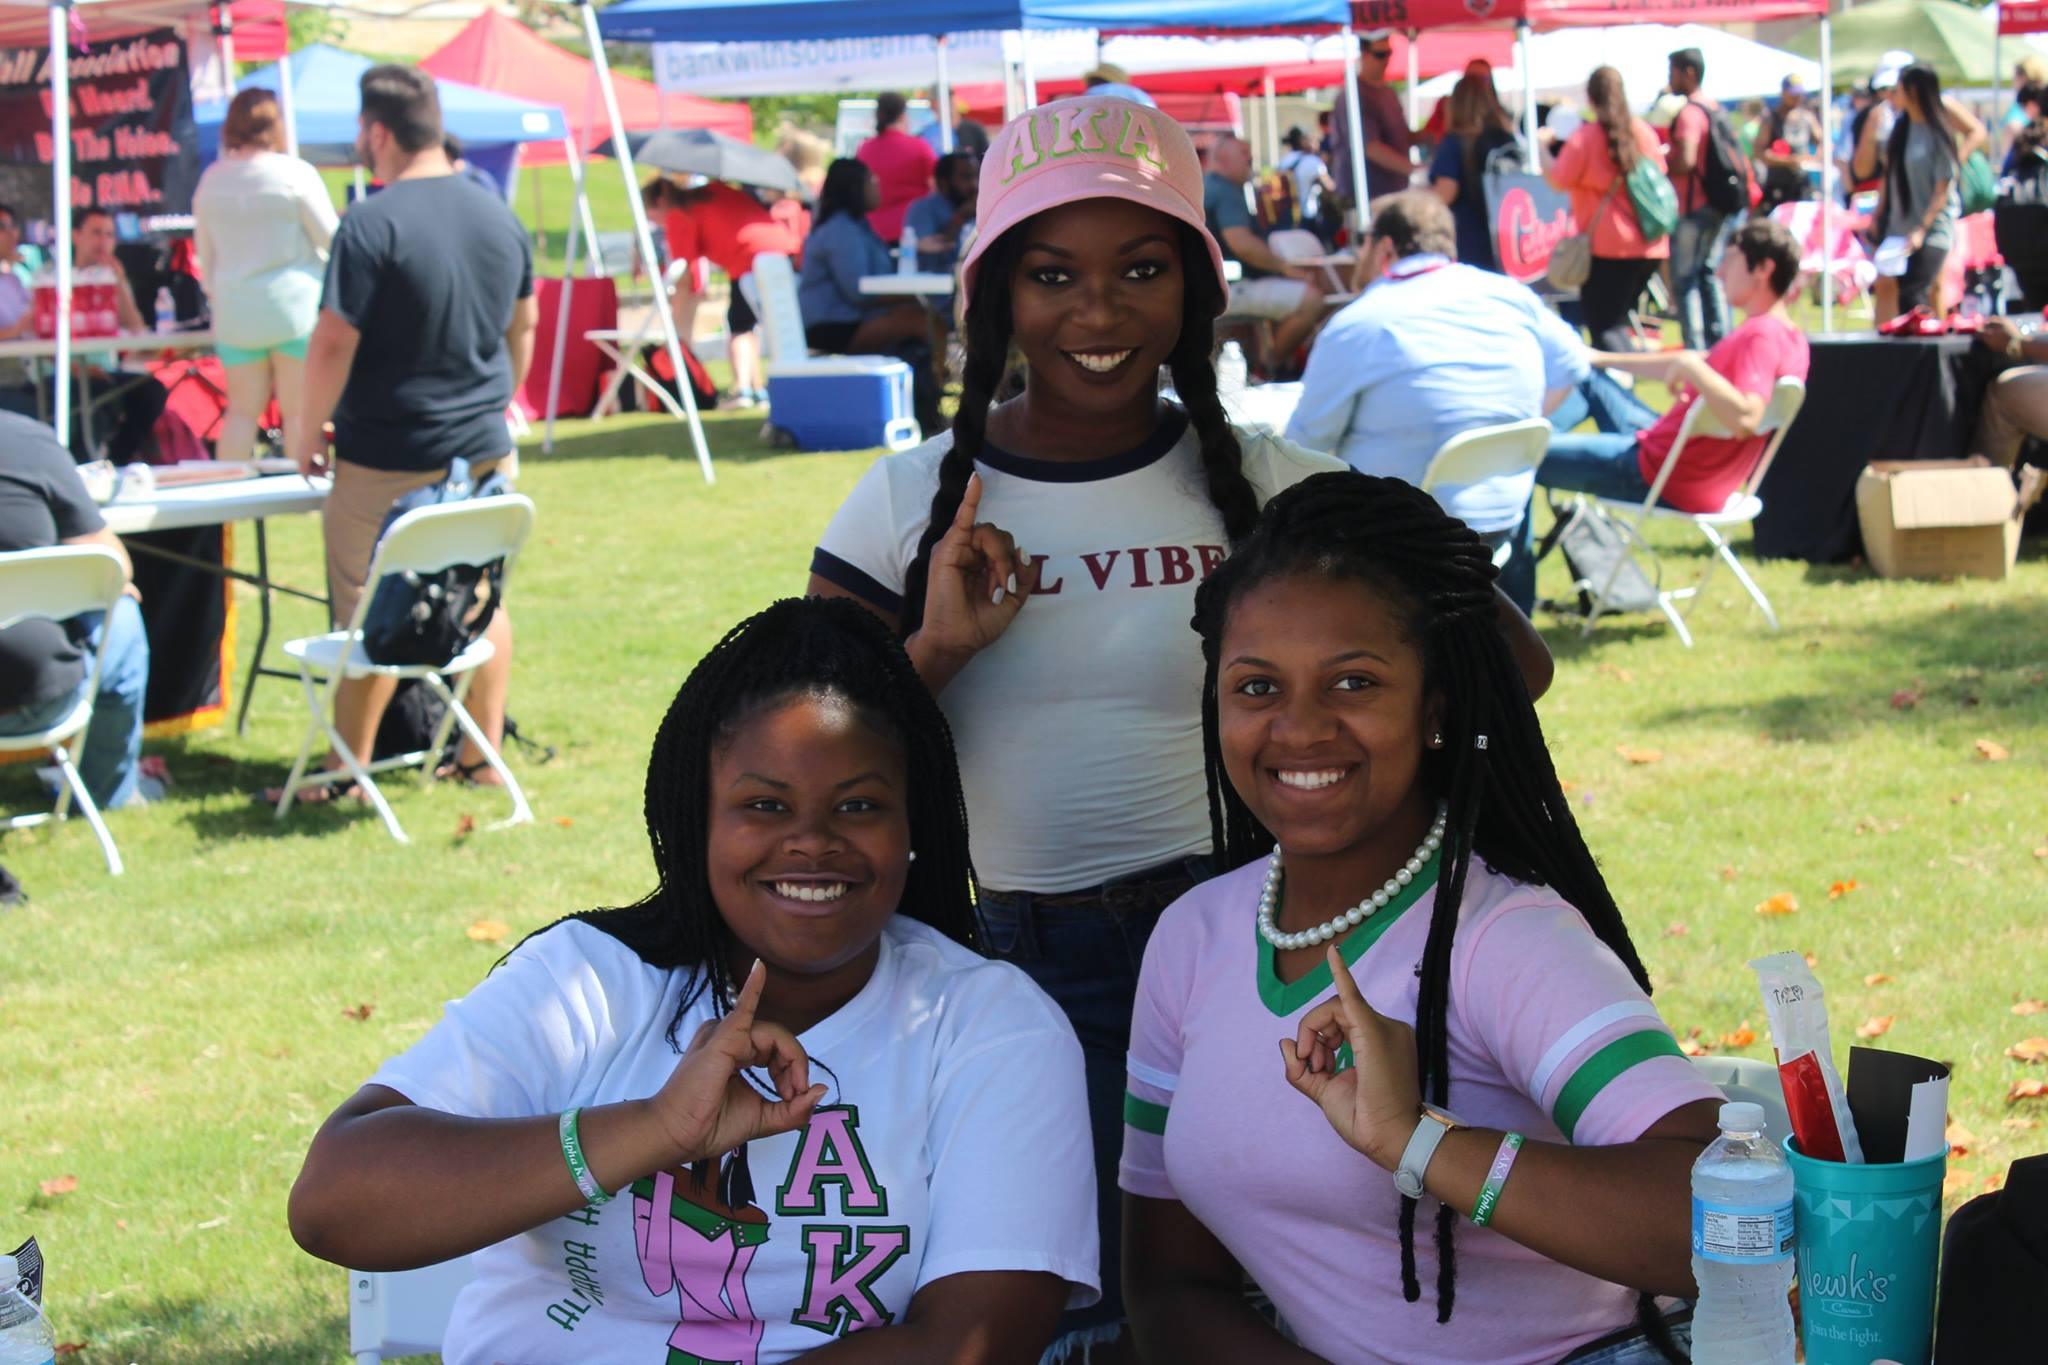 A picture of 3 women in Alpha Kappa Alpha Sorority